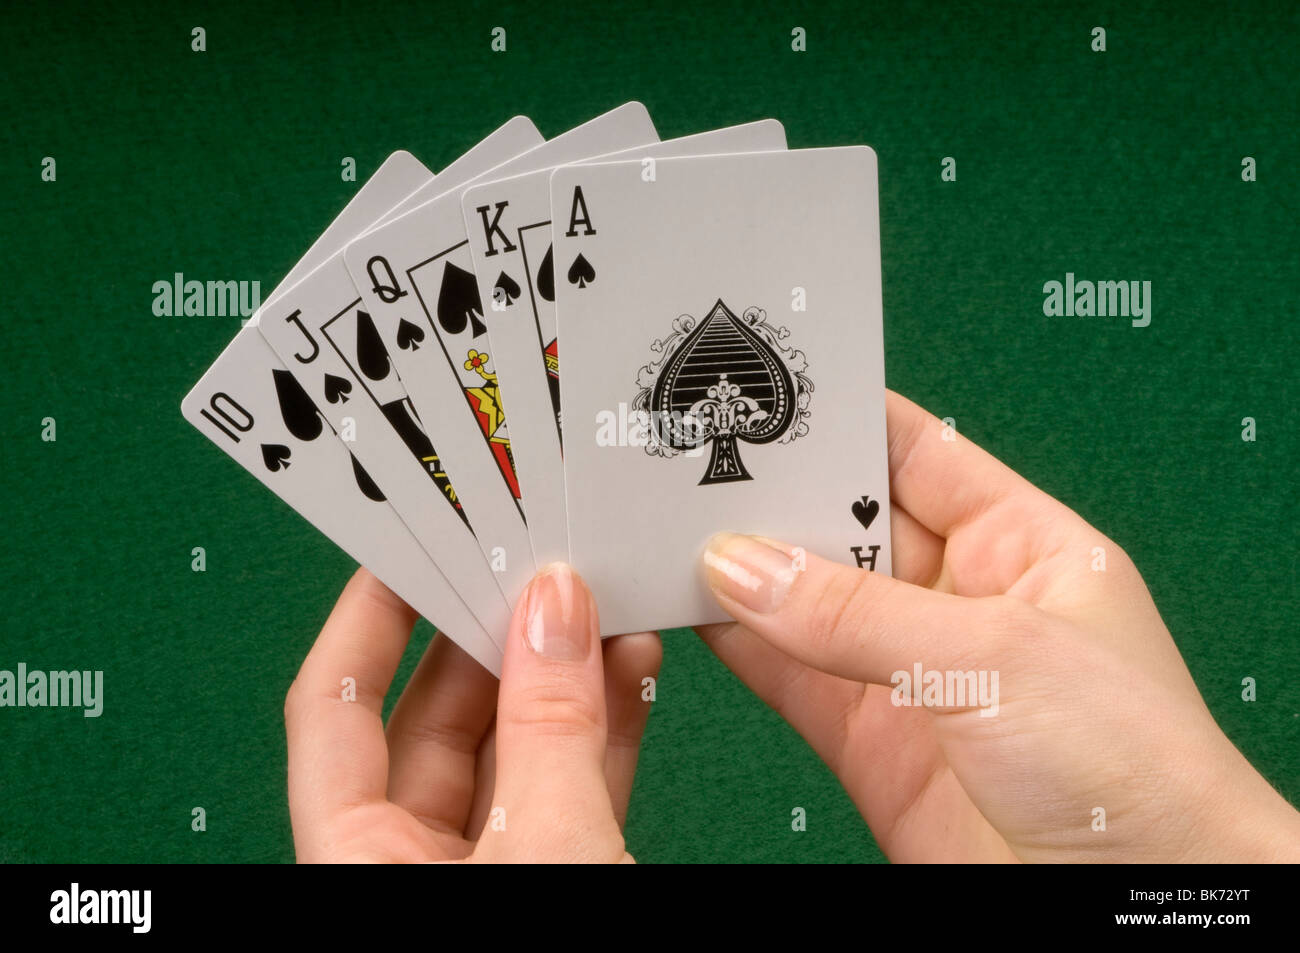 hand with playing cards - Stock Image